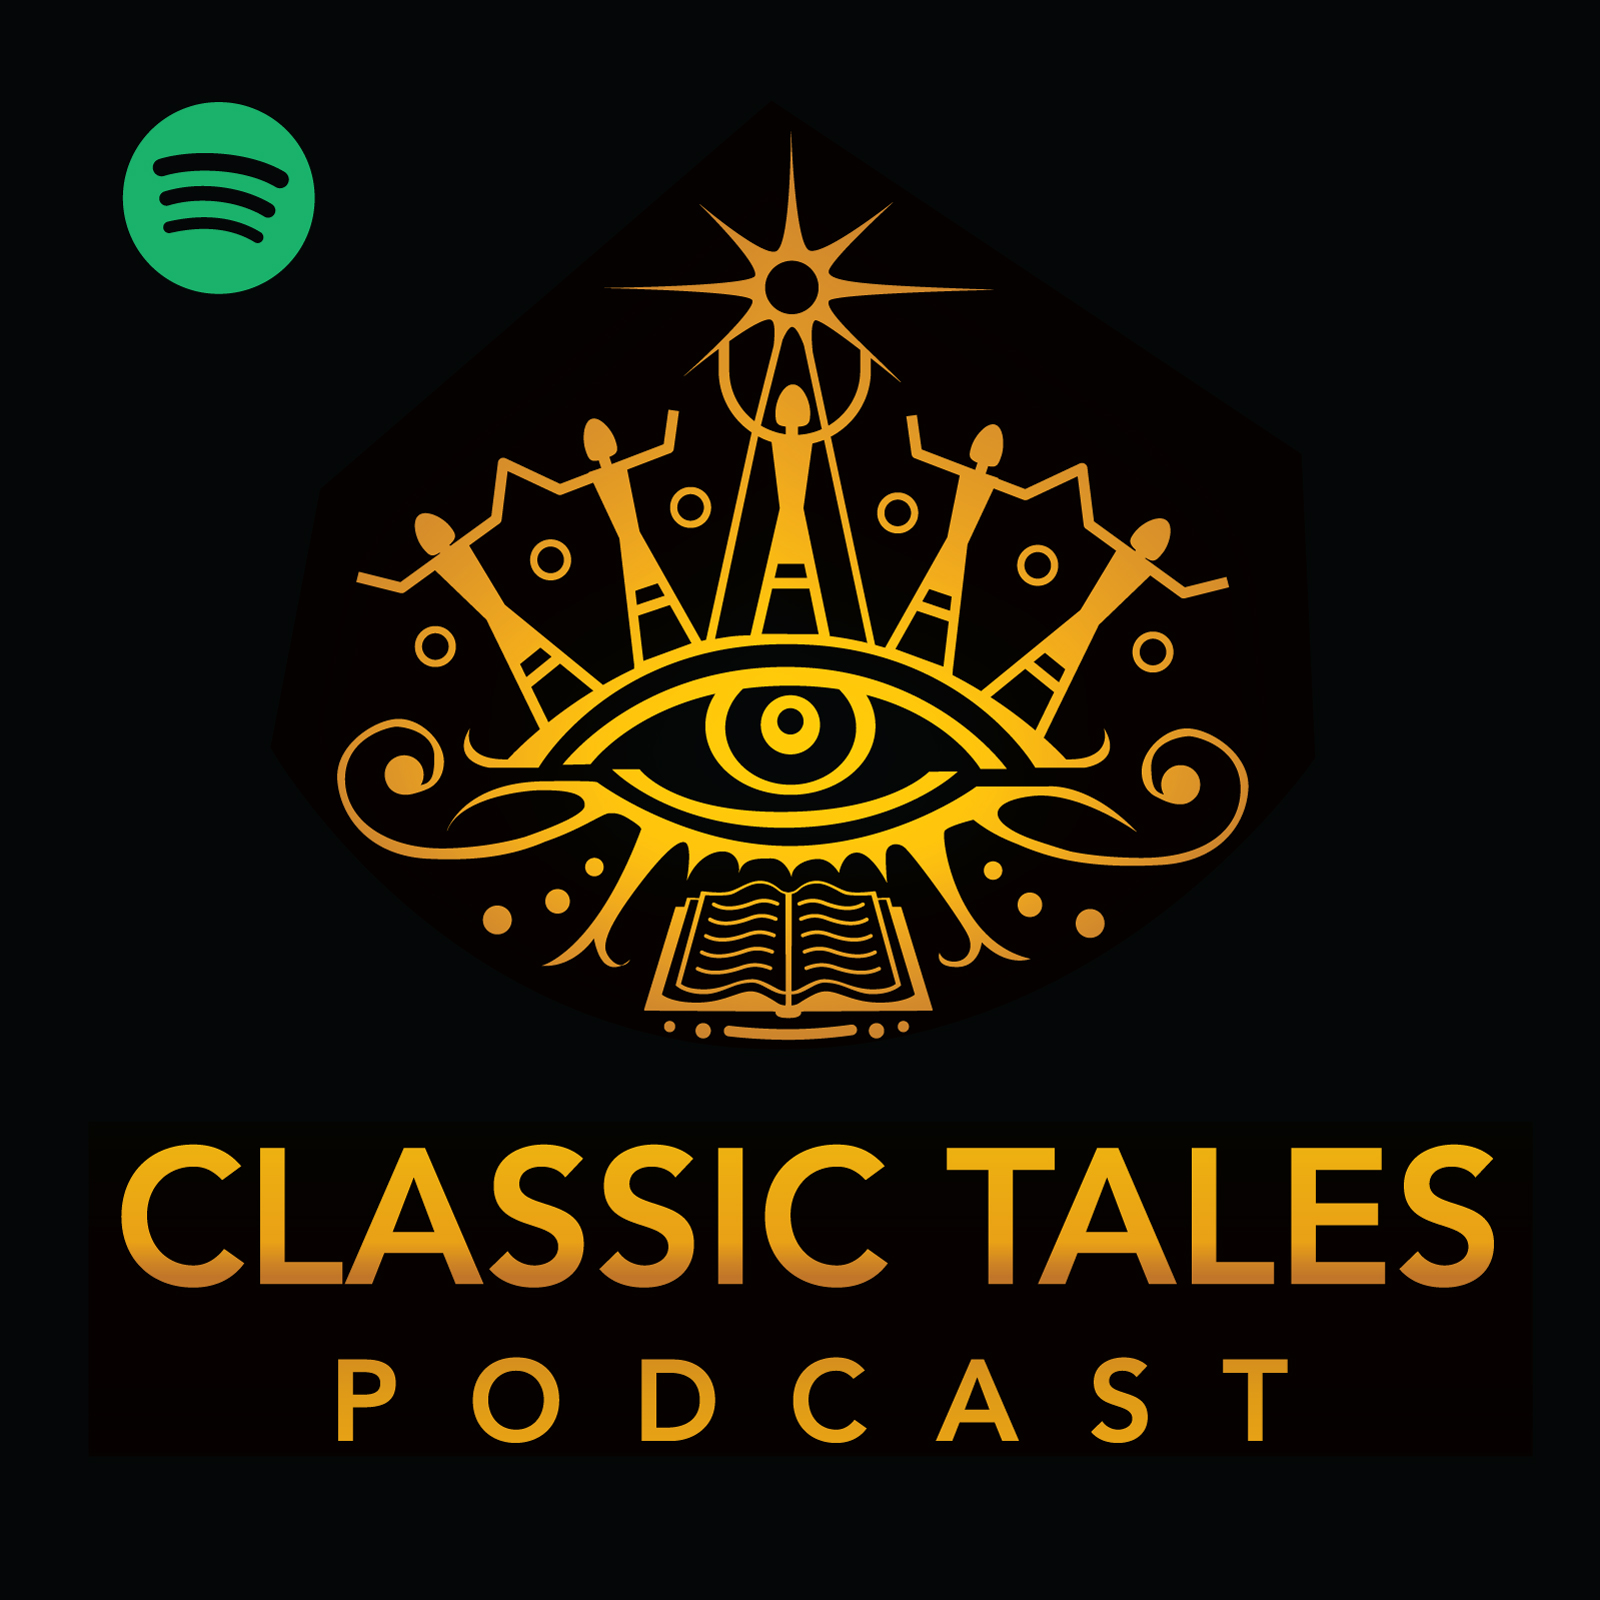 The Classic Tales Podcast show art